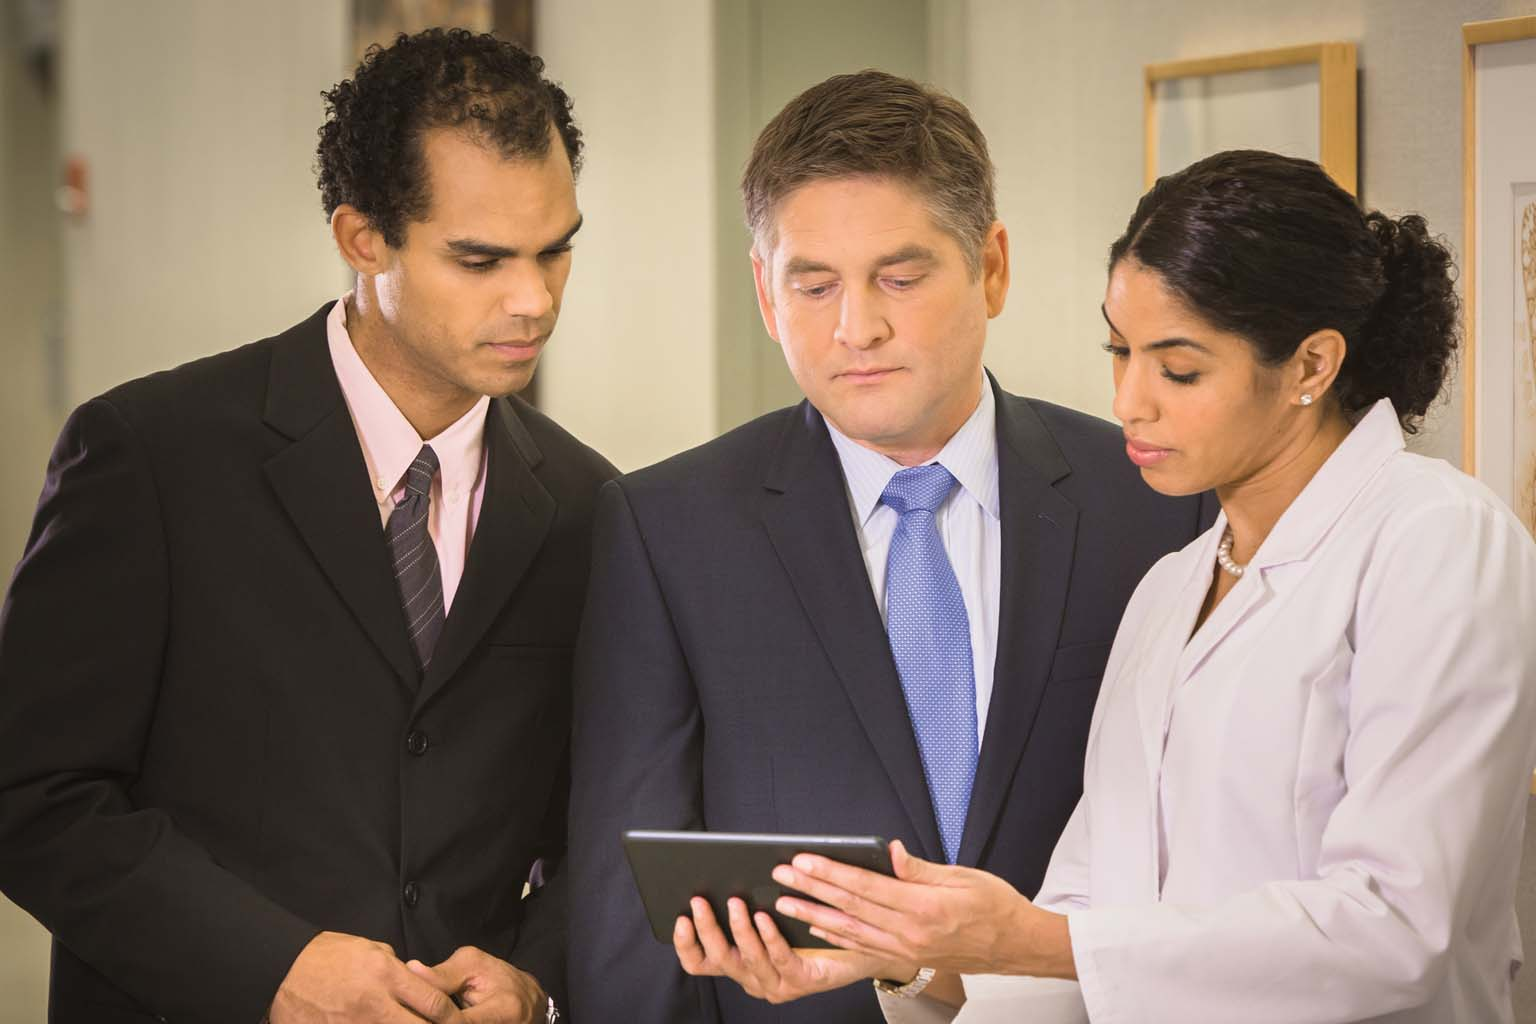 doctor with two businessmen discussing product